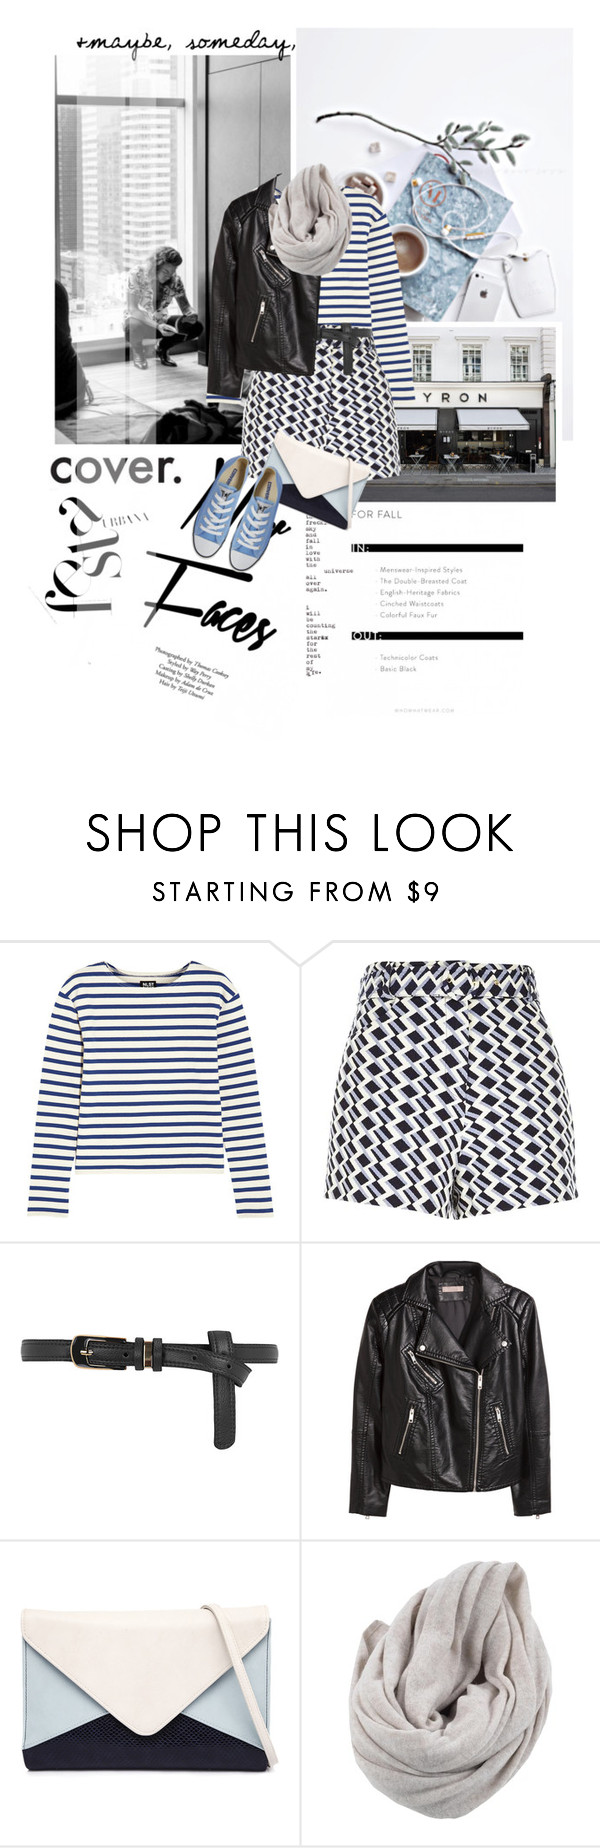 """New faces."" by mutsam17 ❤ liked on Polyvore featuring Topshop, DuÅ¡an, BYRON, NLST, River Island, Dorothy Perkins, H&M, Jendi, White + Warren and Converse"